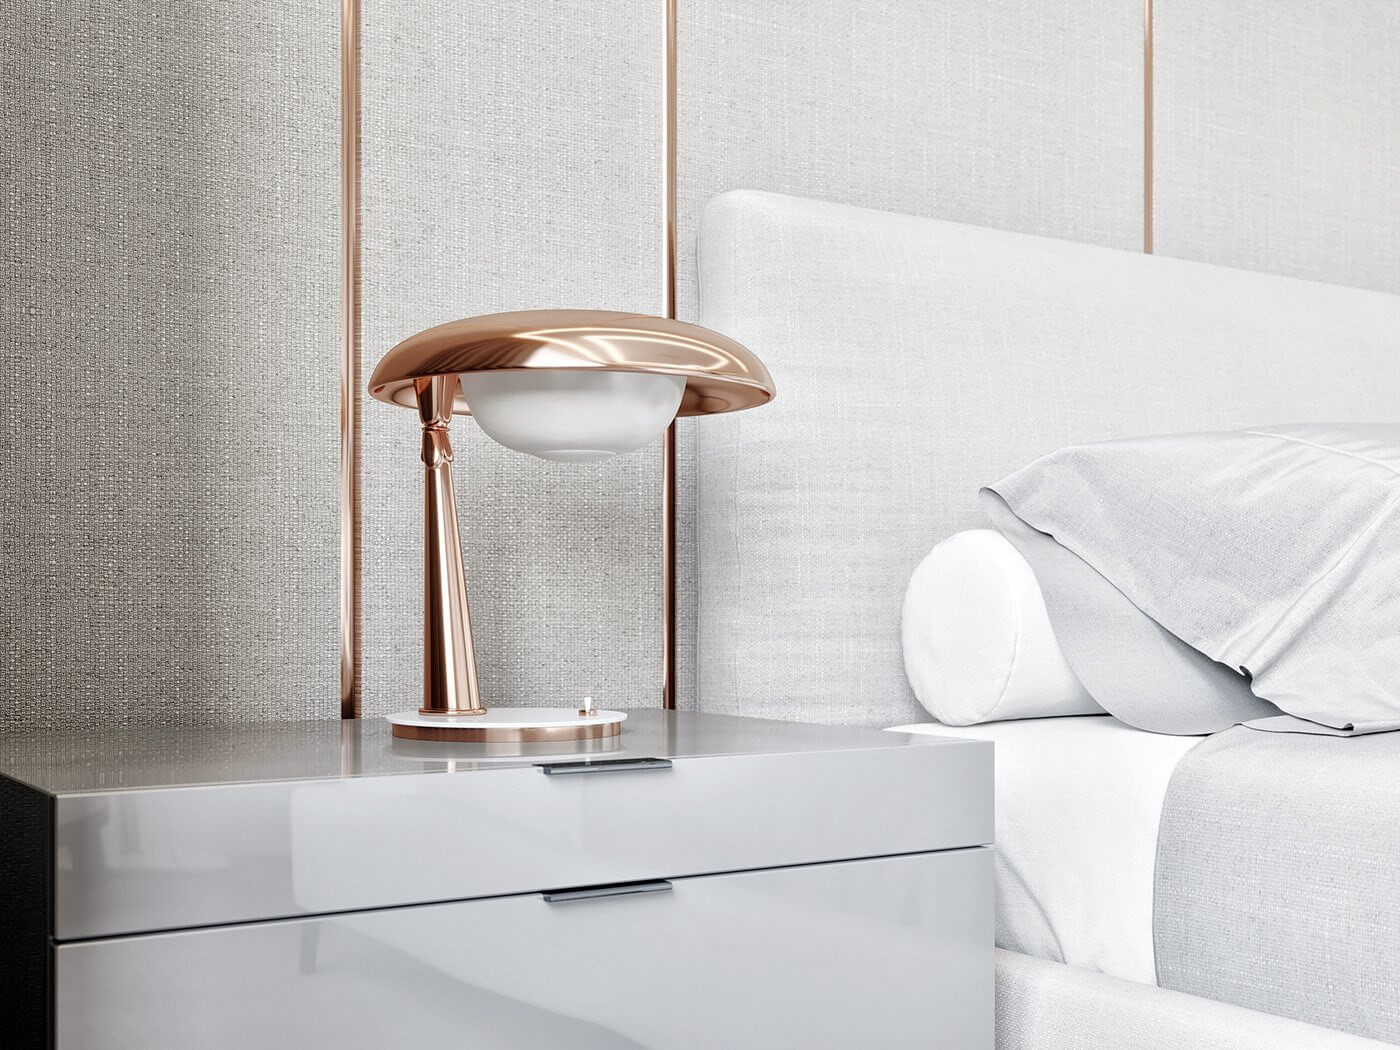 Modern Bedroom interior bed copper table lamps - cgi visualization